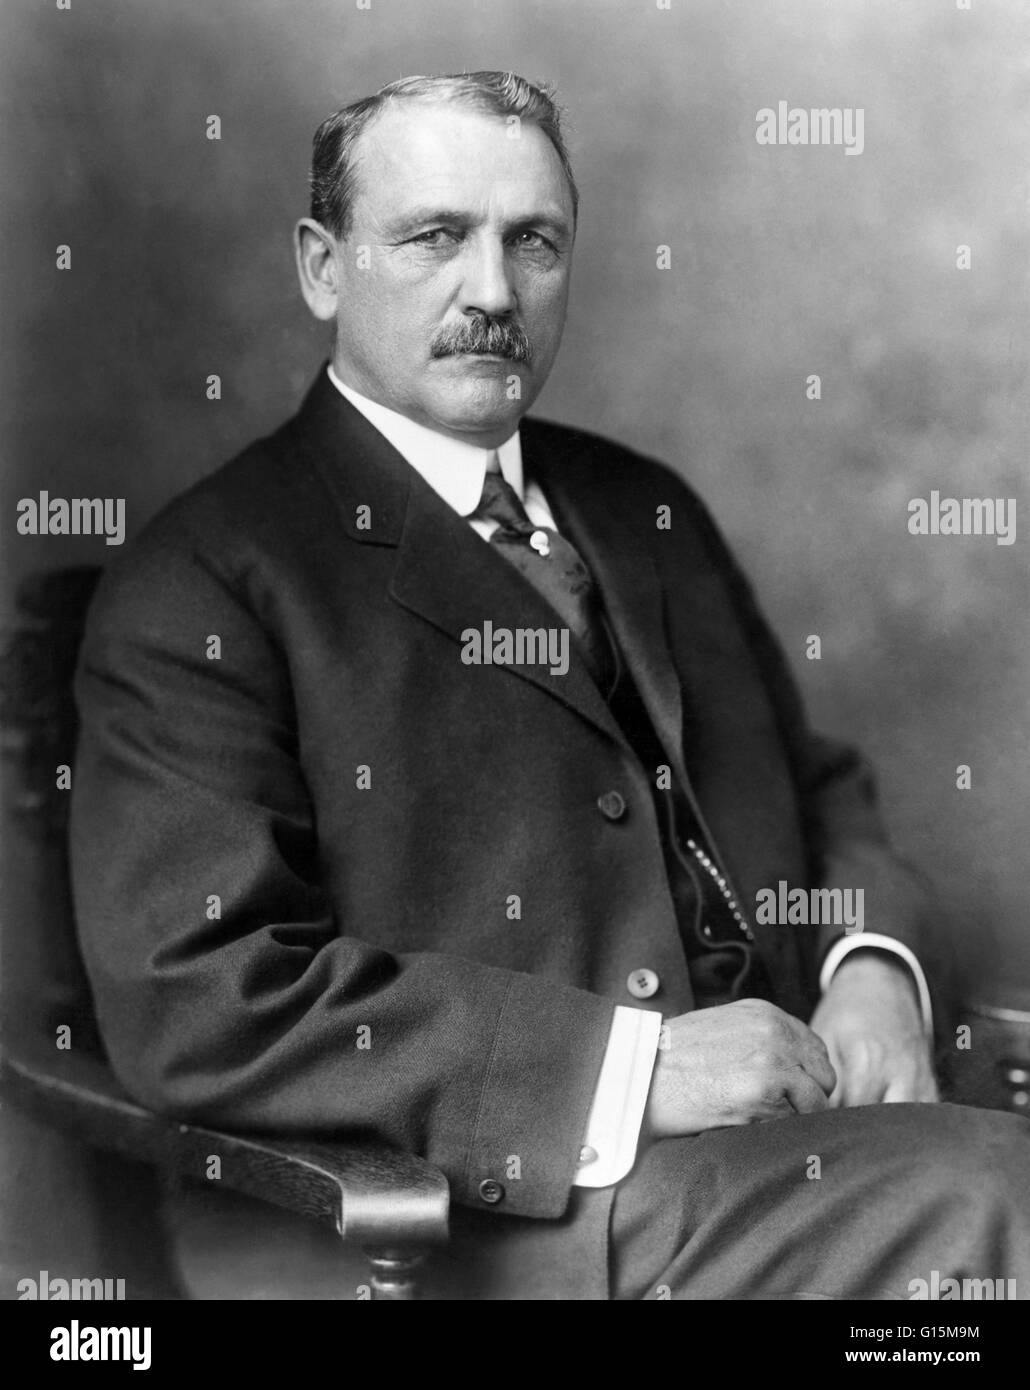 John Frank Stevens (April 25, 1853 - June 2, 1943) was an American engineer responsible for building the Great Northern - Stock Image